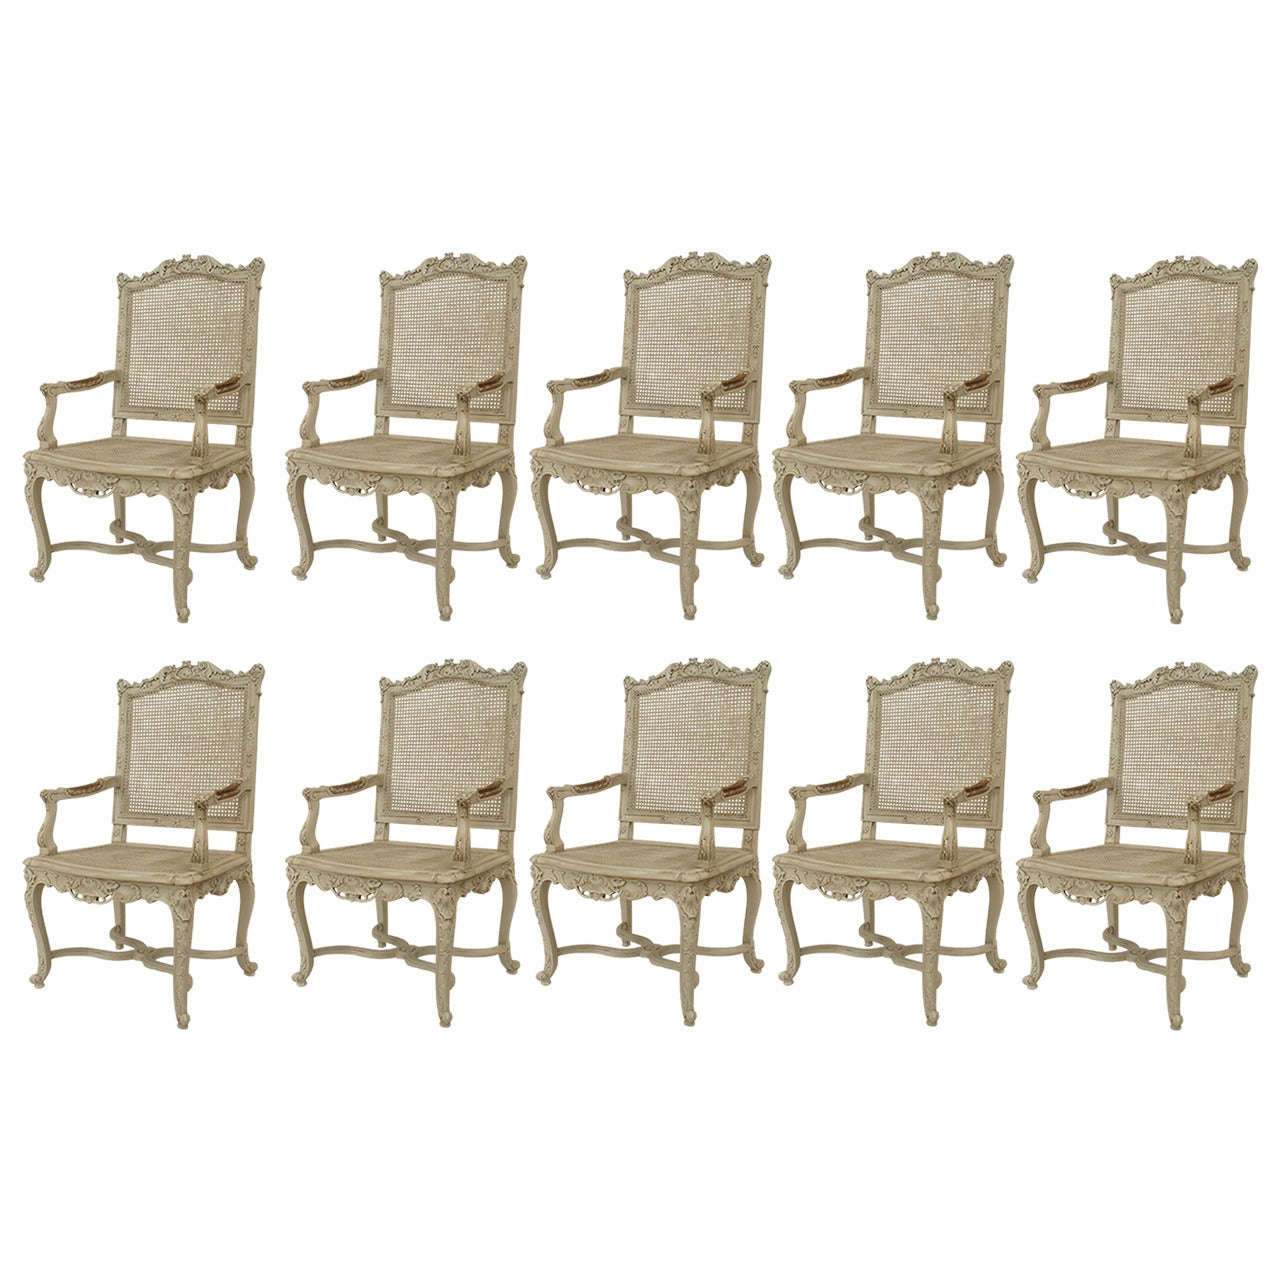 Set of 10 French Regence Carved Chairs